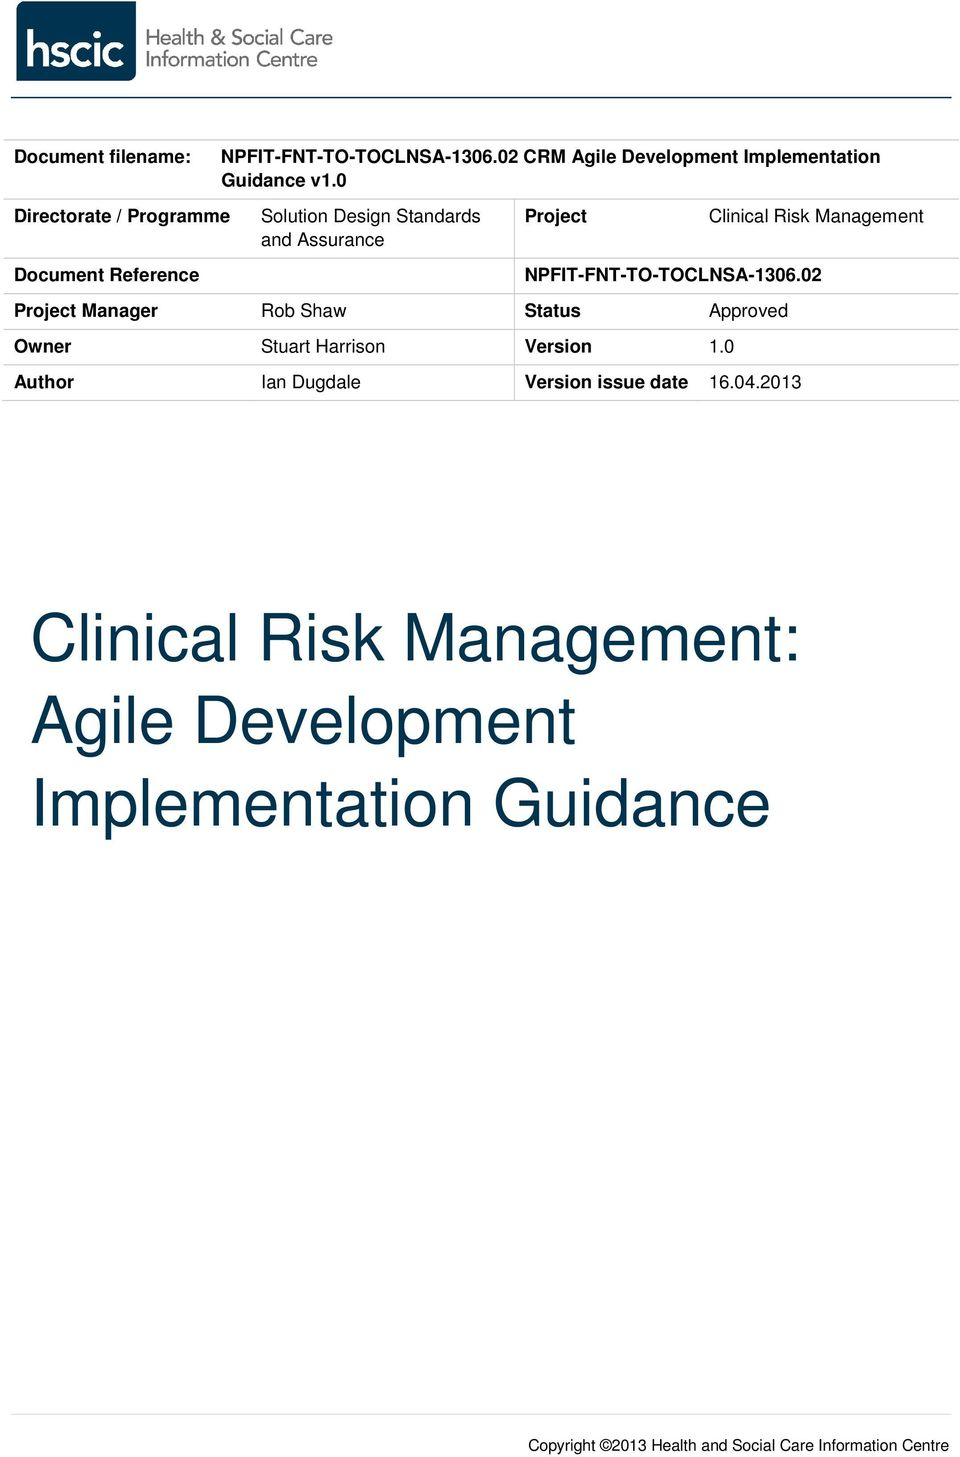 0 Solution Design Standards and Assurance Project Clinical Risk Management NPFIT-FNT-TO-TOCLNSA-1306.